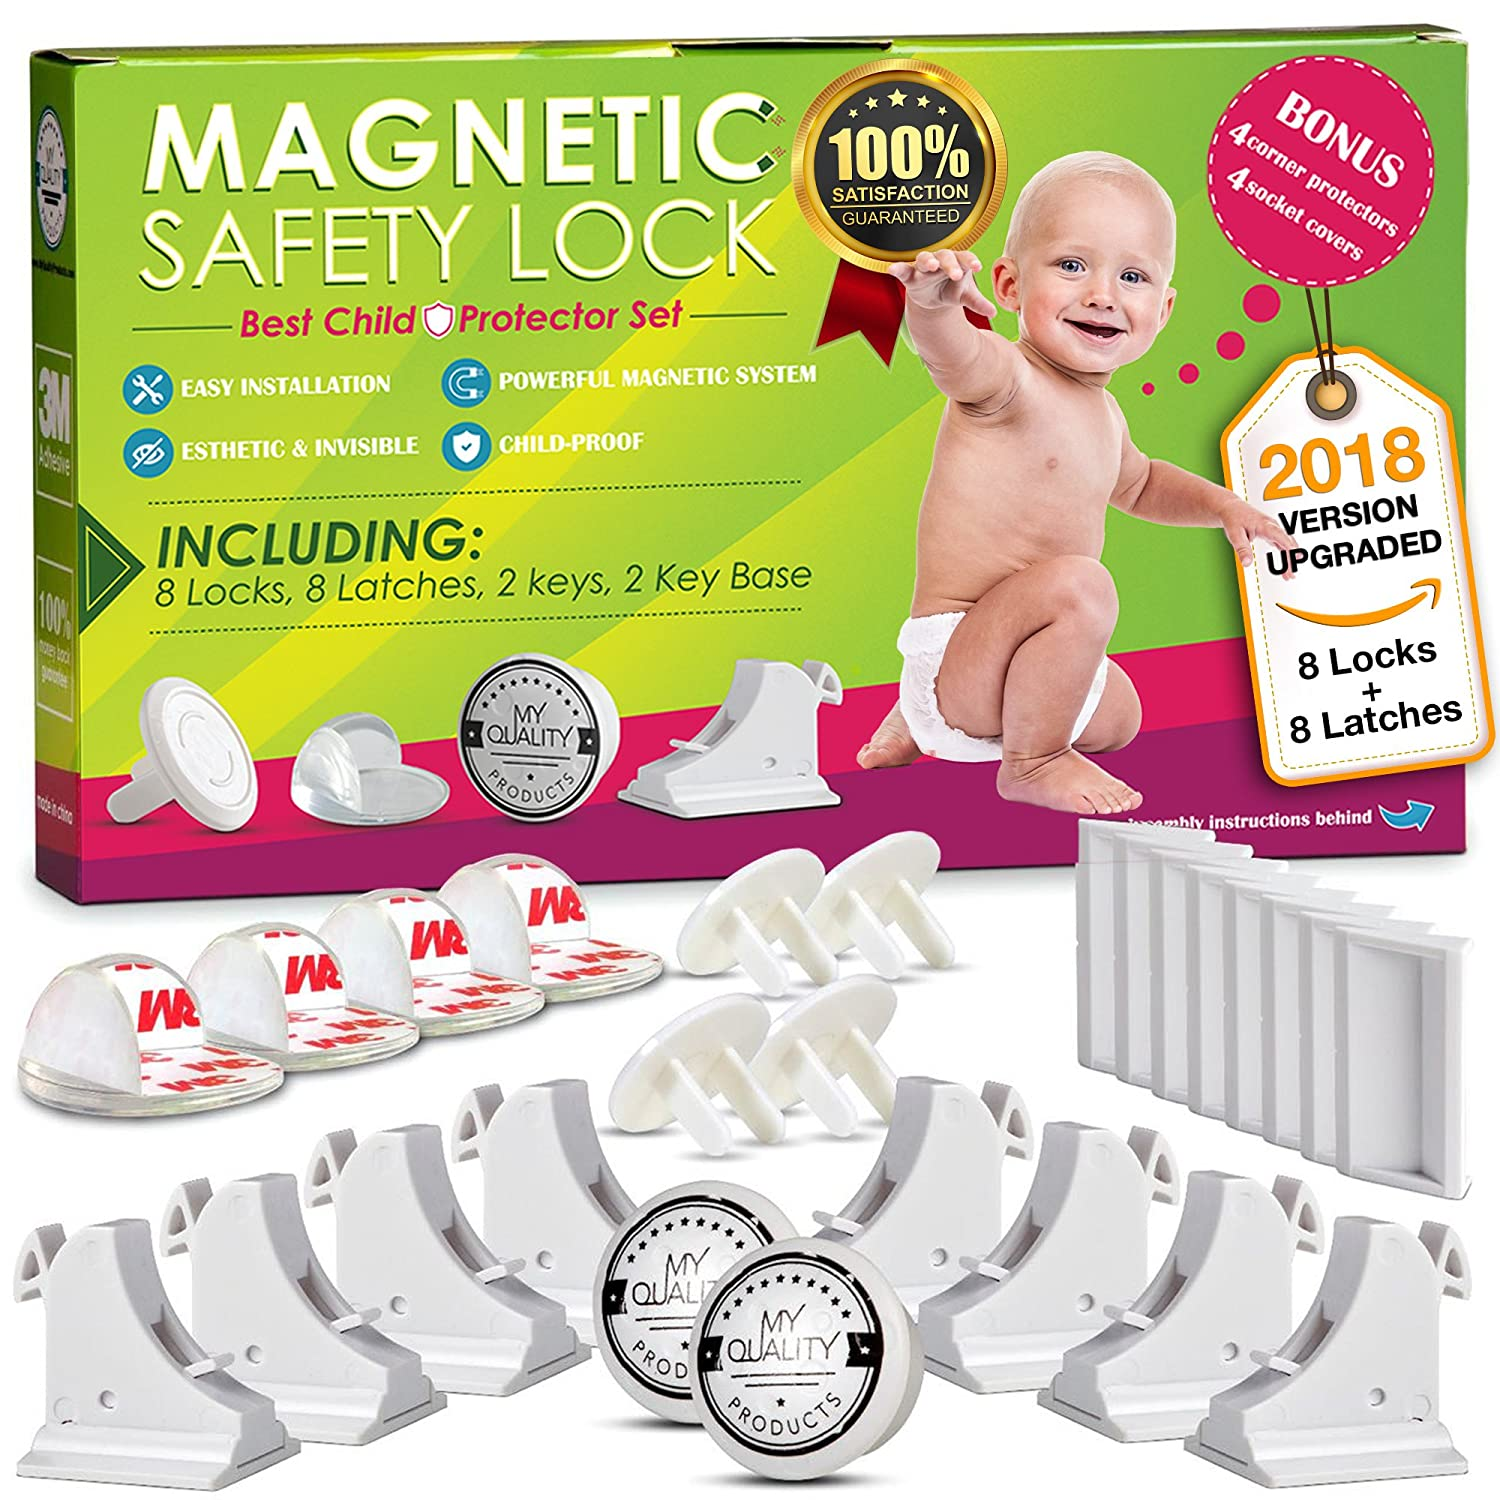 Invisible Magnetic No Drill Safety Lock: Keep Your Baby Safe! Secure Kitchen & Bedroom Cabinets & cupboards With 8 Child Proof Door & Drawer Locks for Kids & toddlers.2 Keys & 3M Adhesive Straps MQP MQ-20